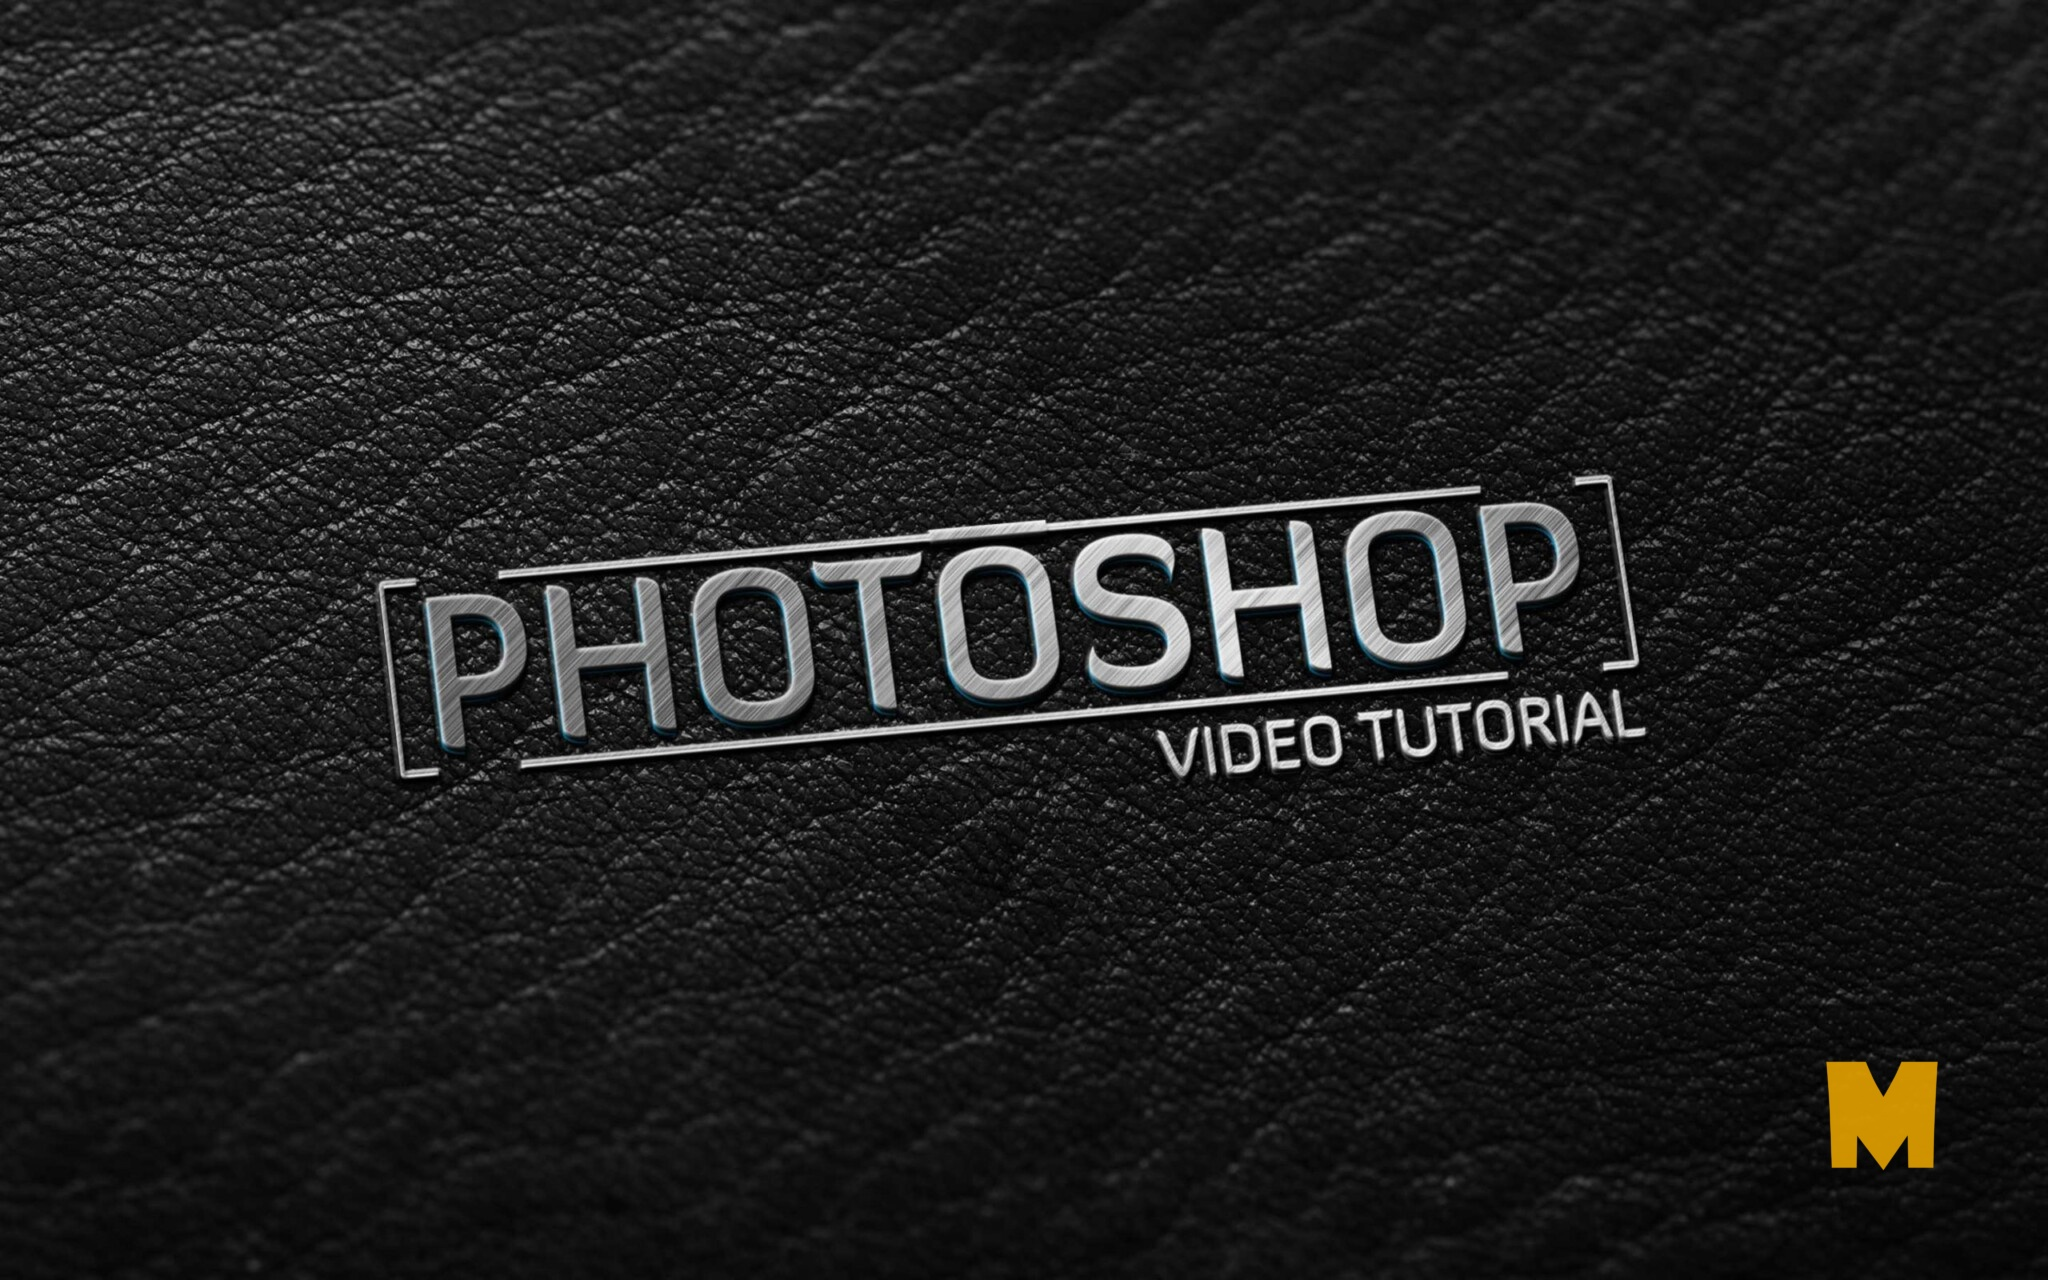 Awsome Dark Leather - Metallic Finish logo mockup